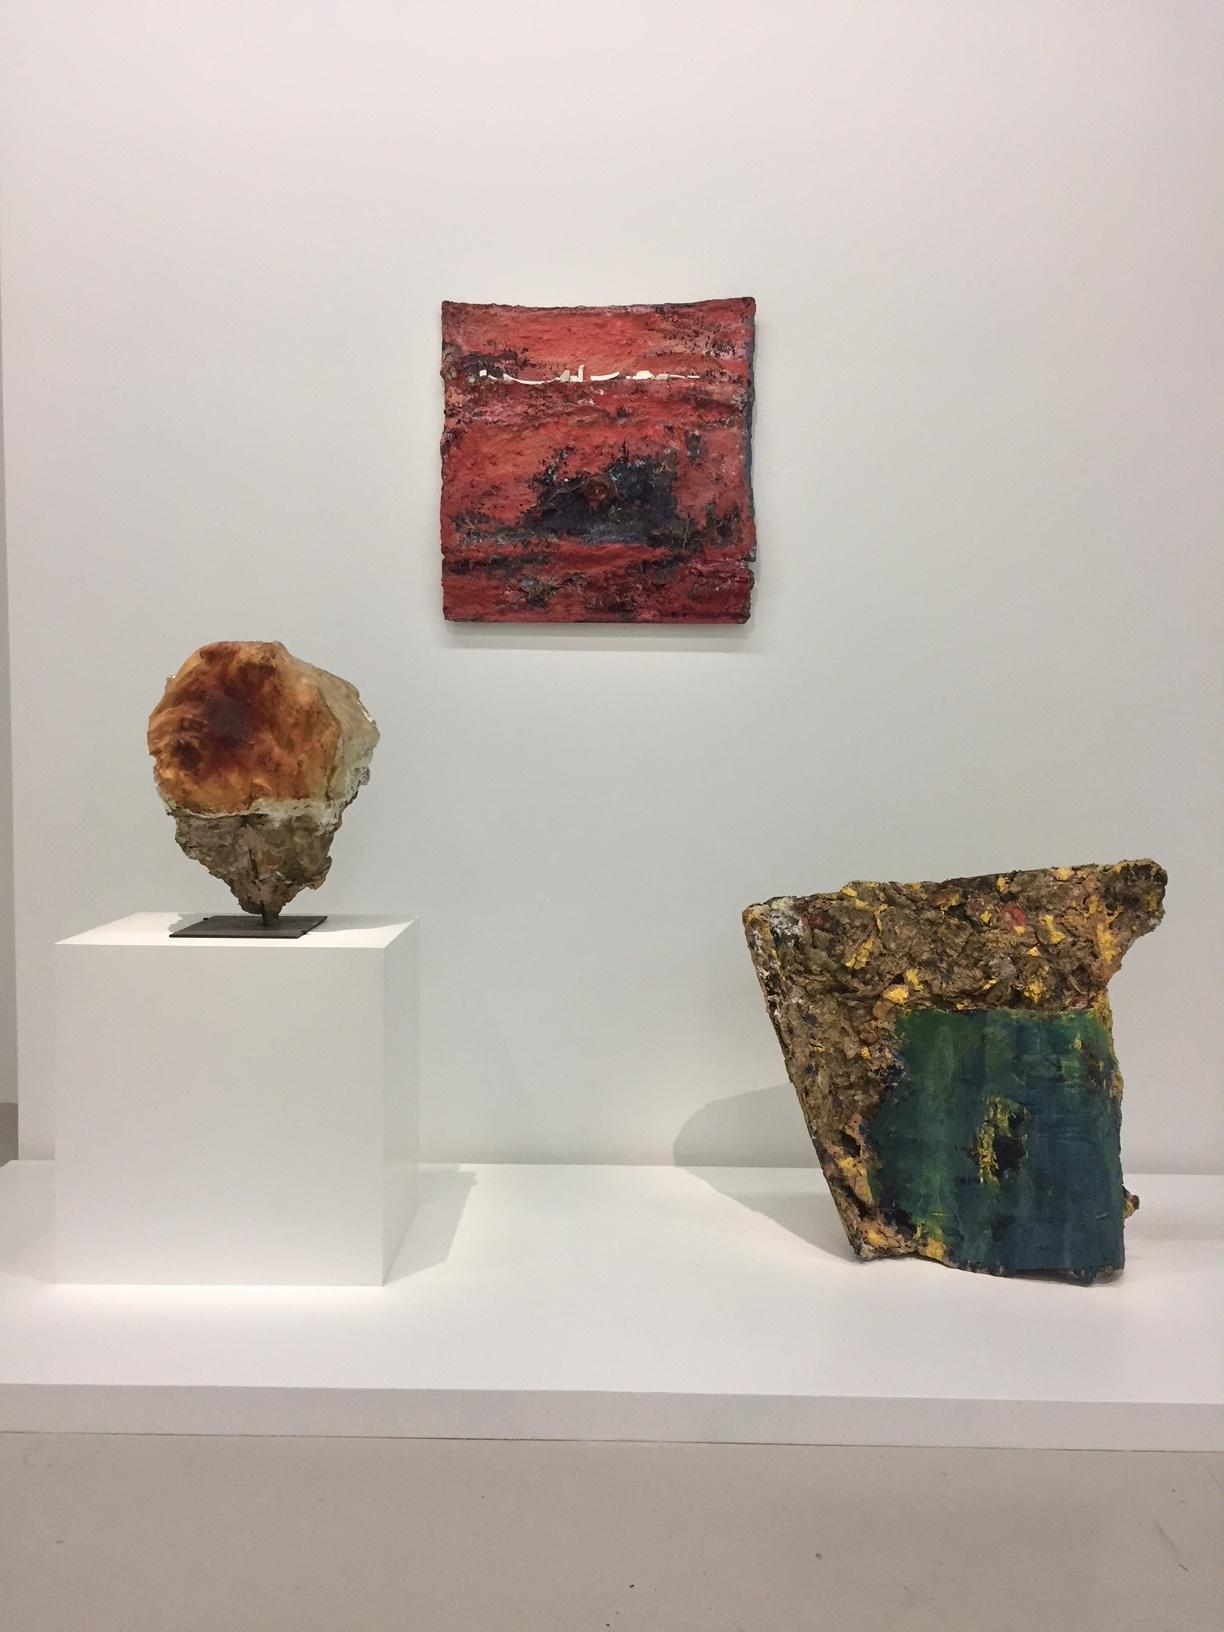 From left to right: collaborations with: Herbert Brandl, Albert Oehlen, and Herbert Brandl, titled  Ohne Titel  (1987),  Flatus vocis  (1991), Frucht ( Fruit, 1987), respectively.